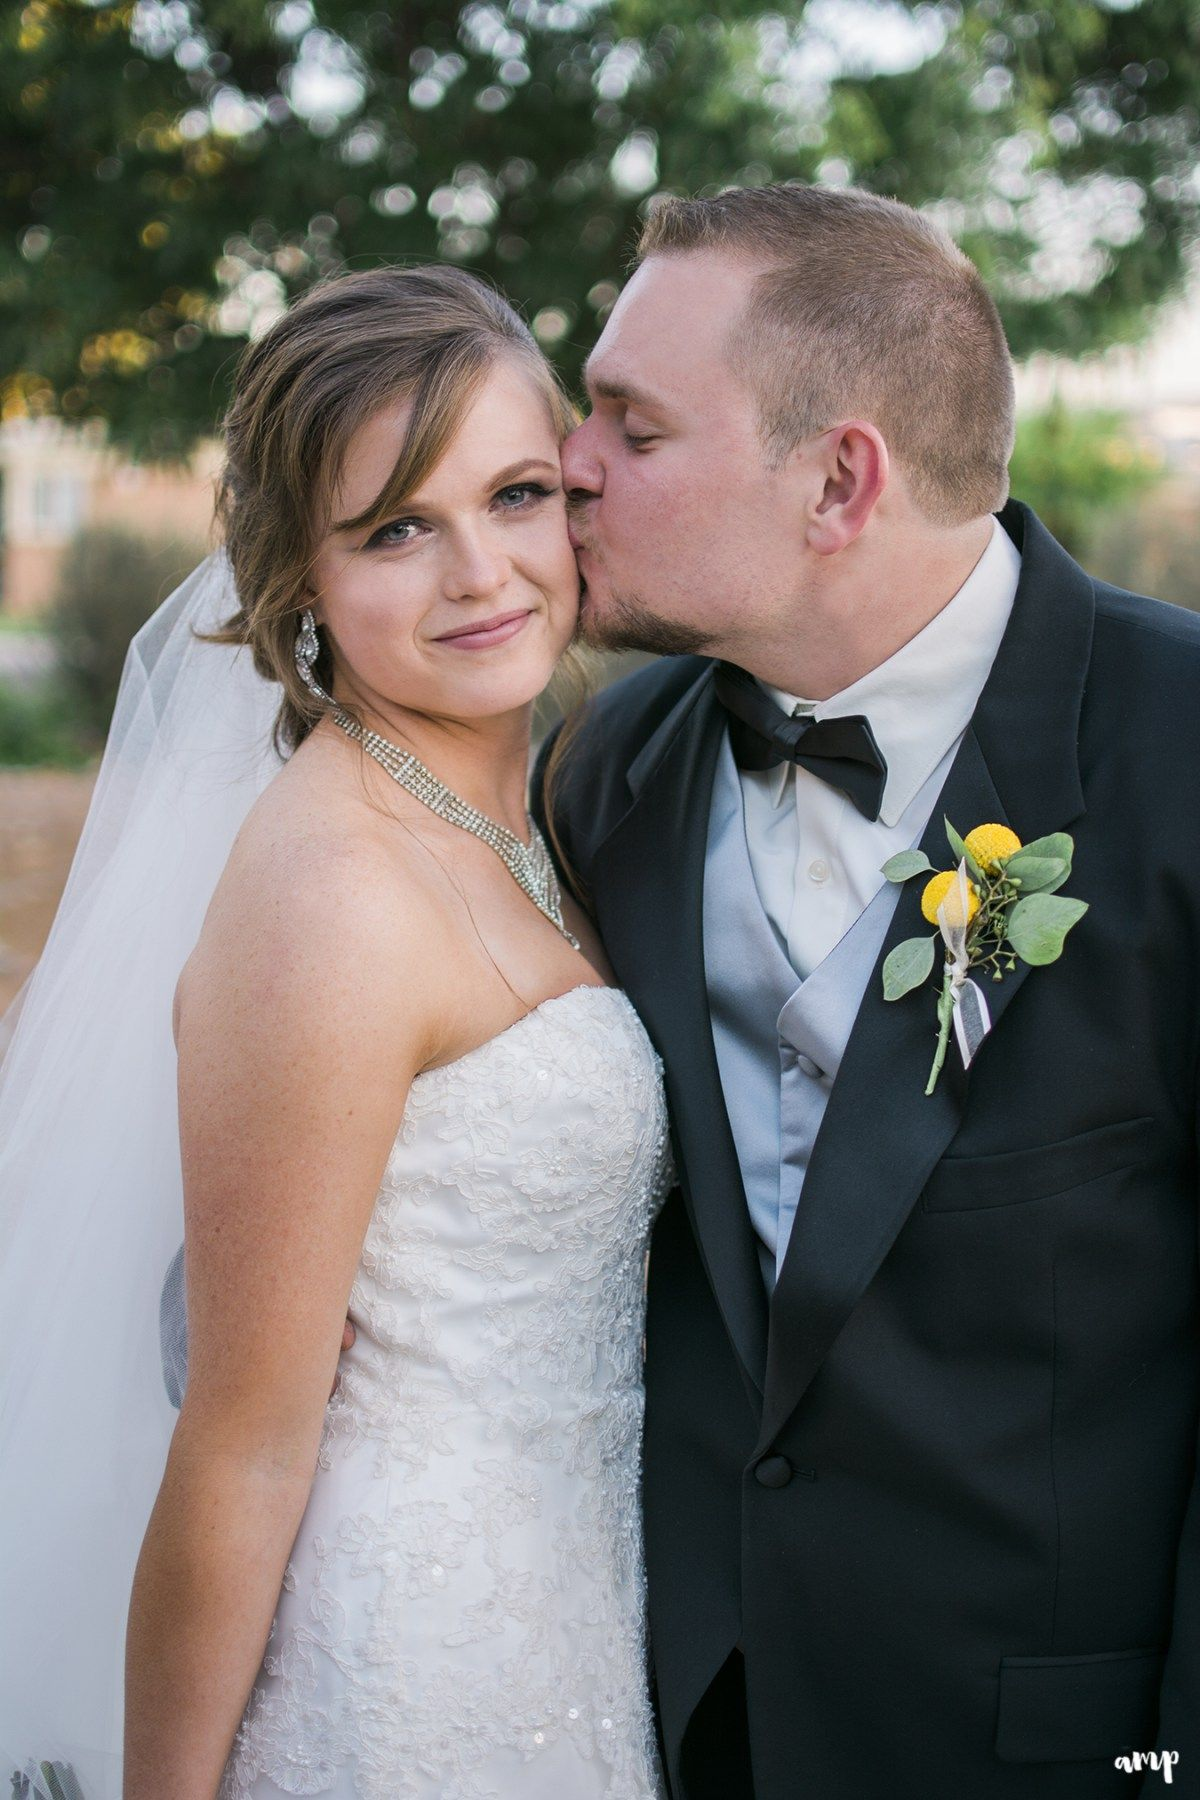 Bill u katie weddings pinterest wedding wedding photos and